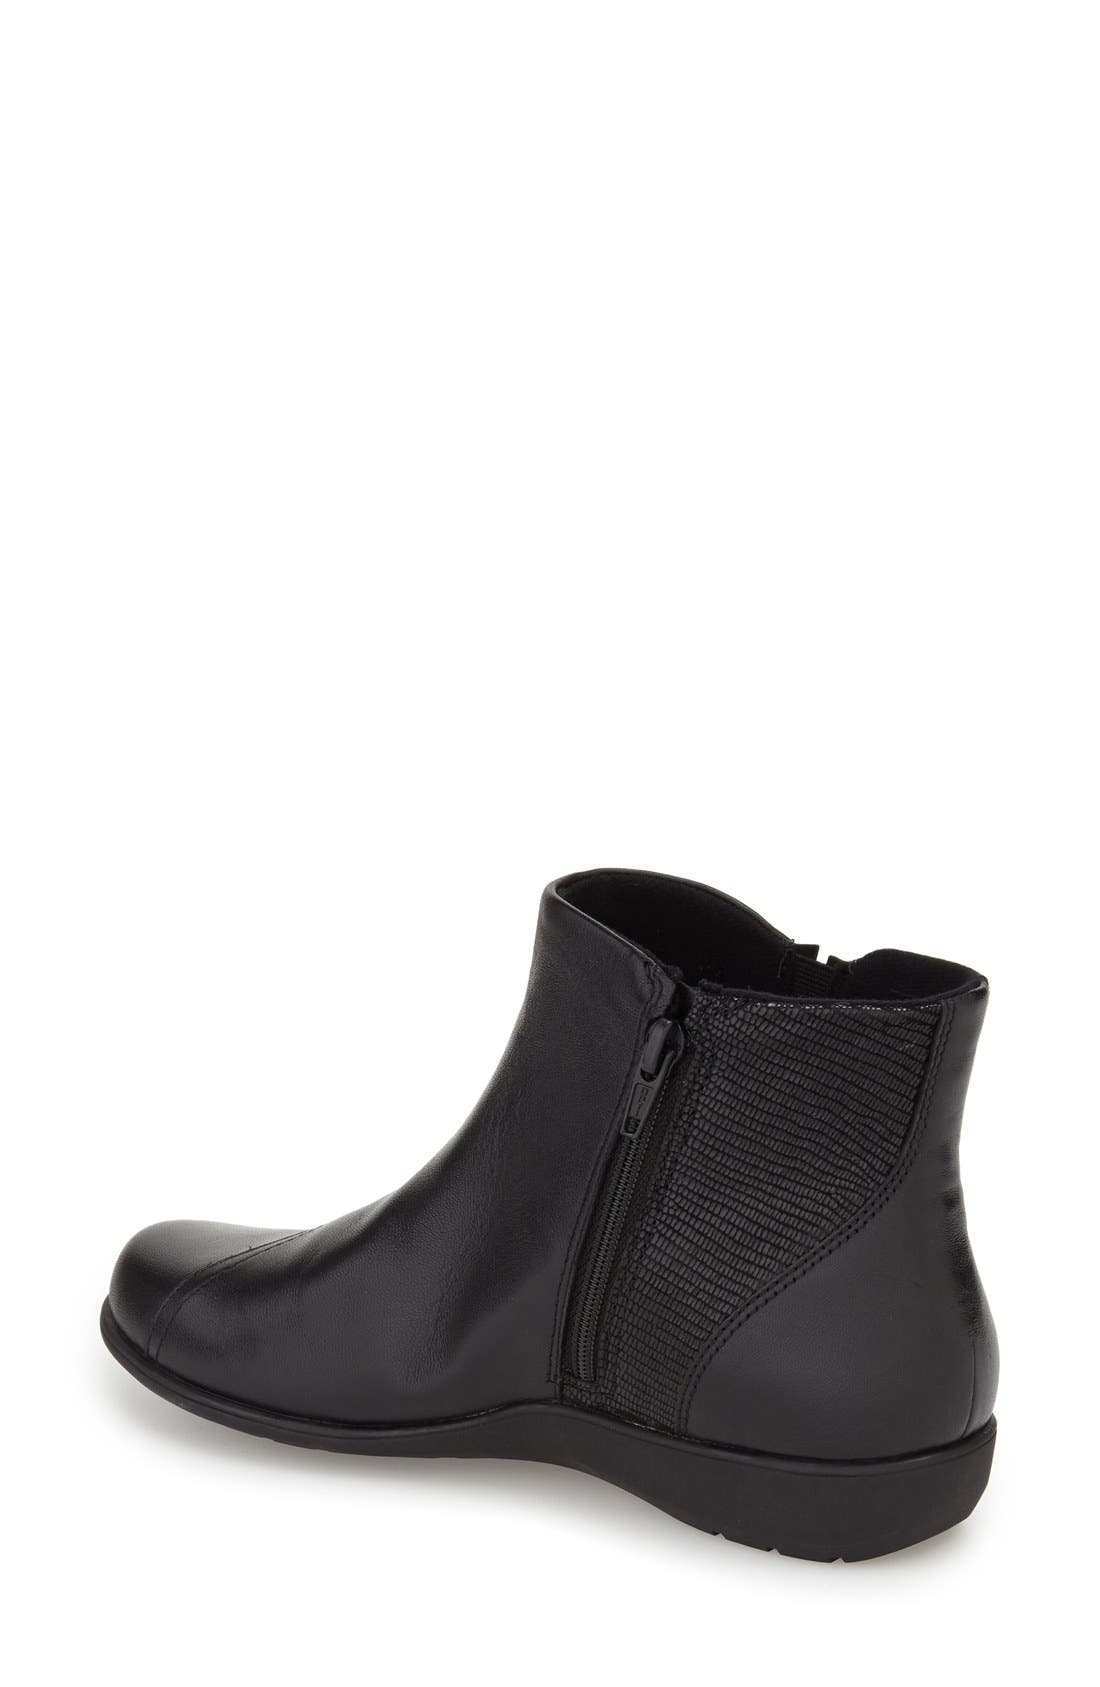 'Anstice' Wedge Bootie,                             Alternate thumbnail 2, color,                             Black Leather